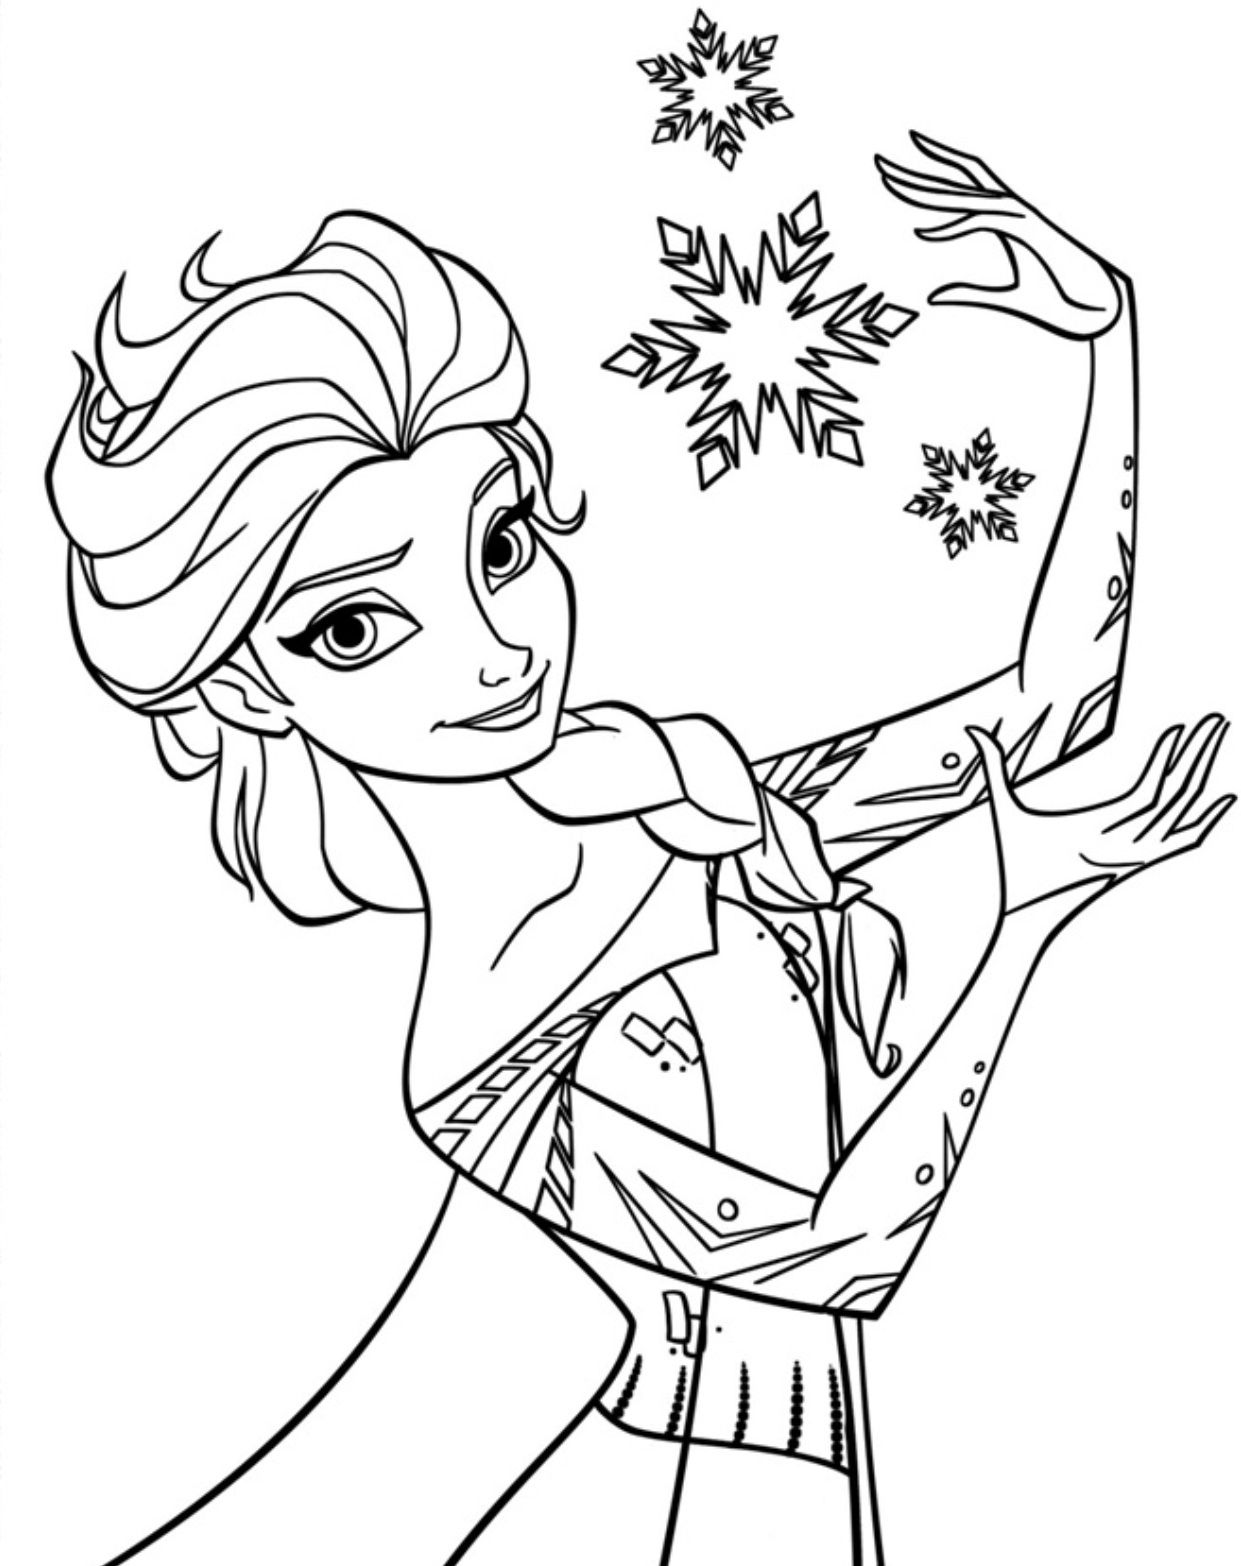 Free Printable Elsa Coloring Pages For Kids Best Coloring Pages For Kids Elsa Coloring Pages Disney Princess Coloring Pages Frozen Coloring